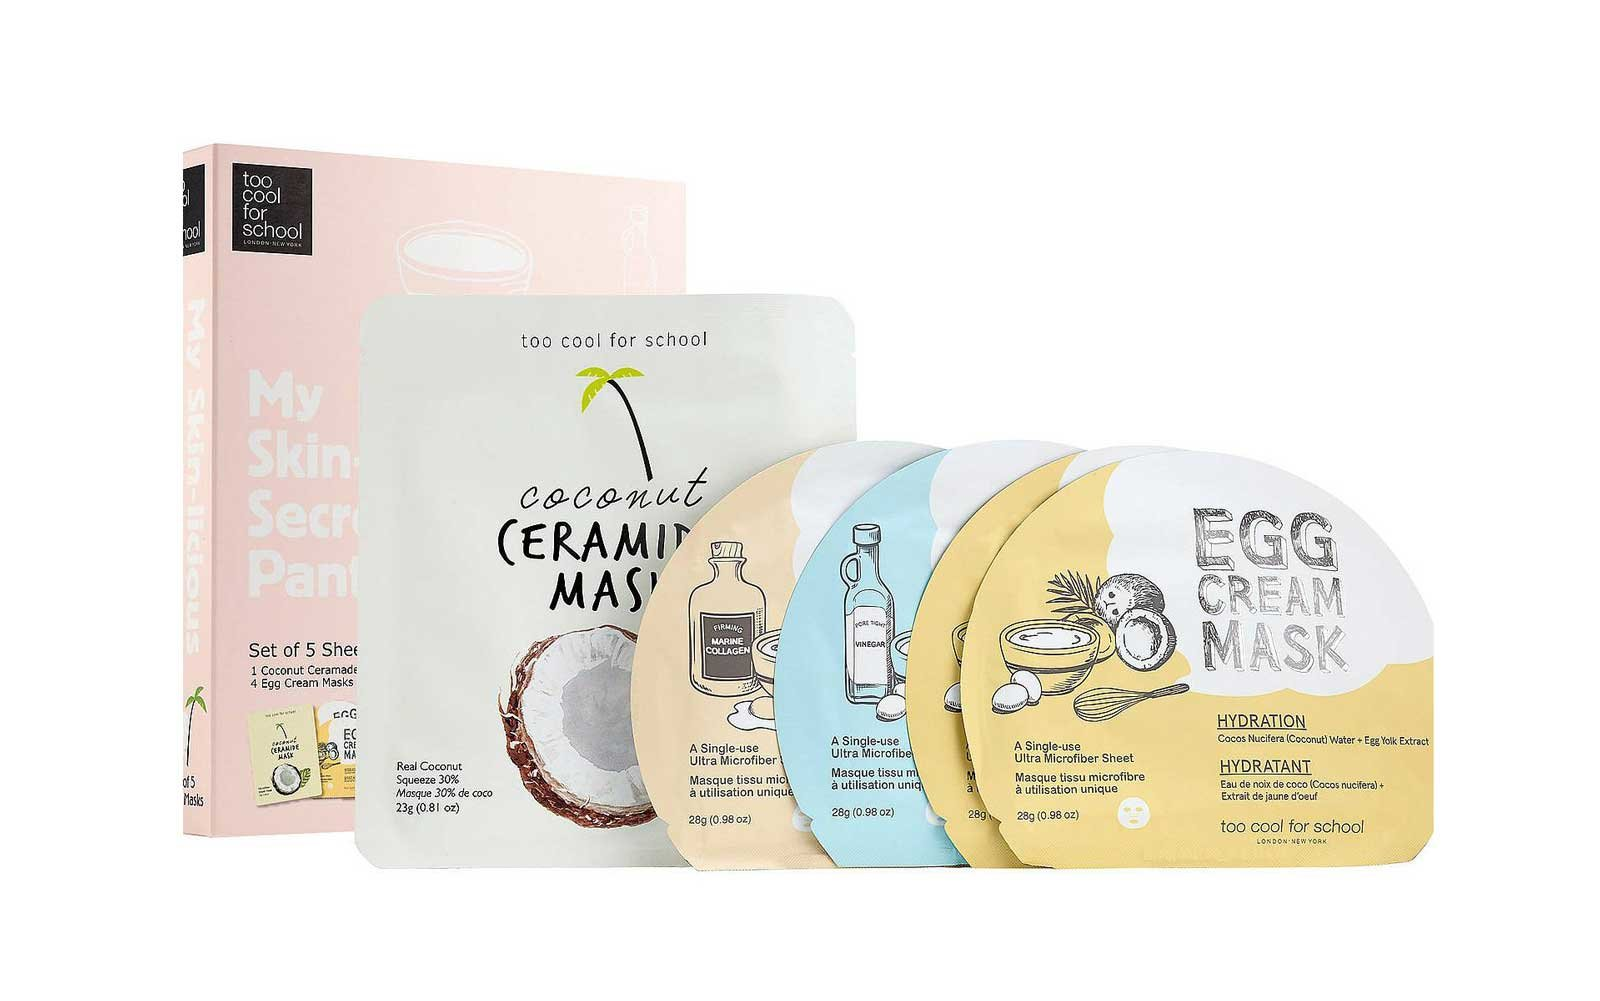 Sheet Mask set by Too Cool for School